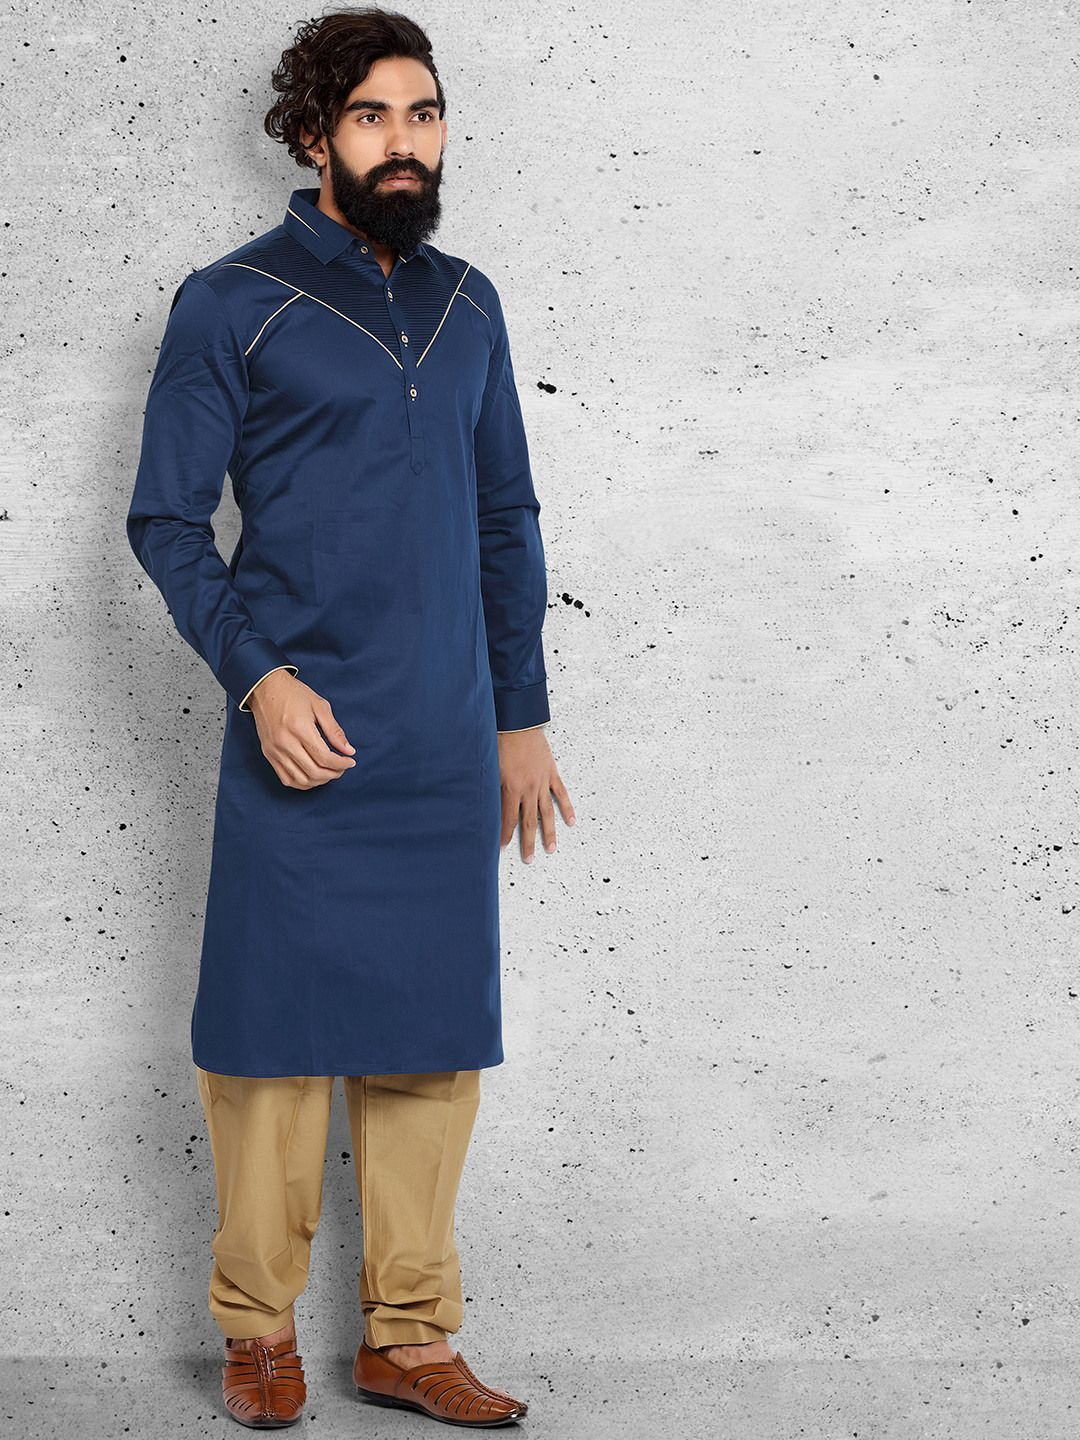 Shop plain wedding wear navy pathani suit online from gfashion